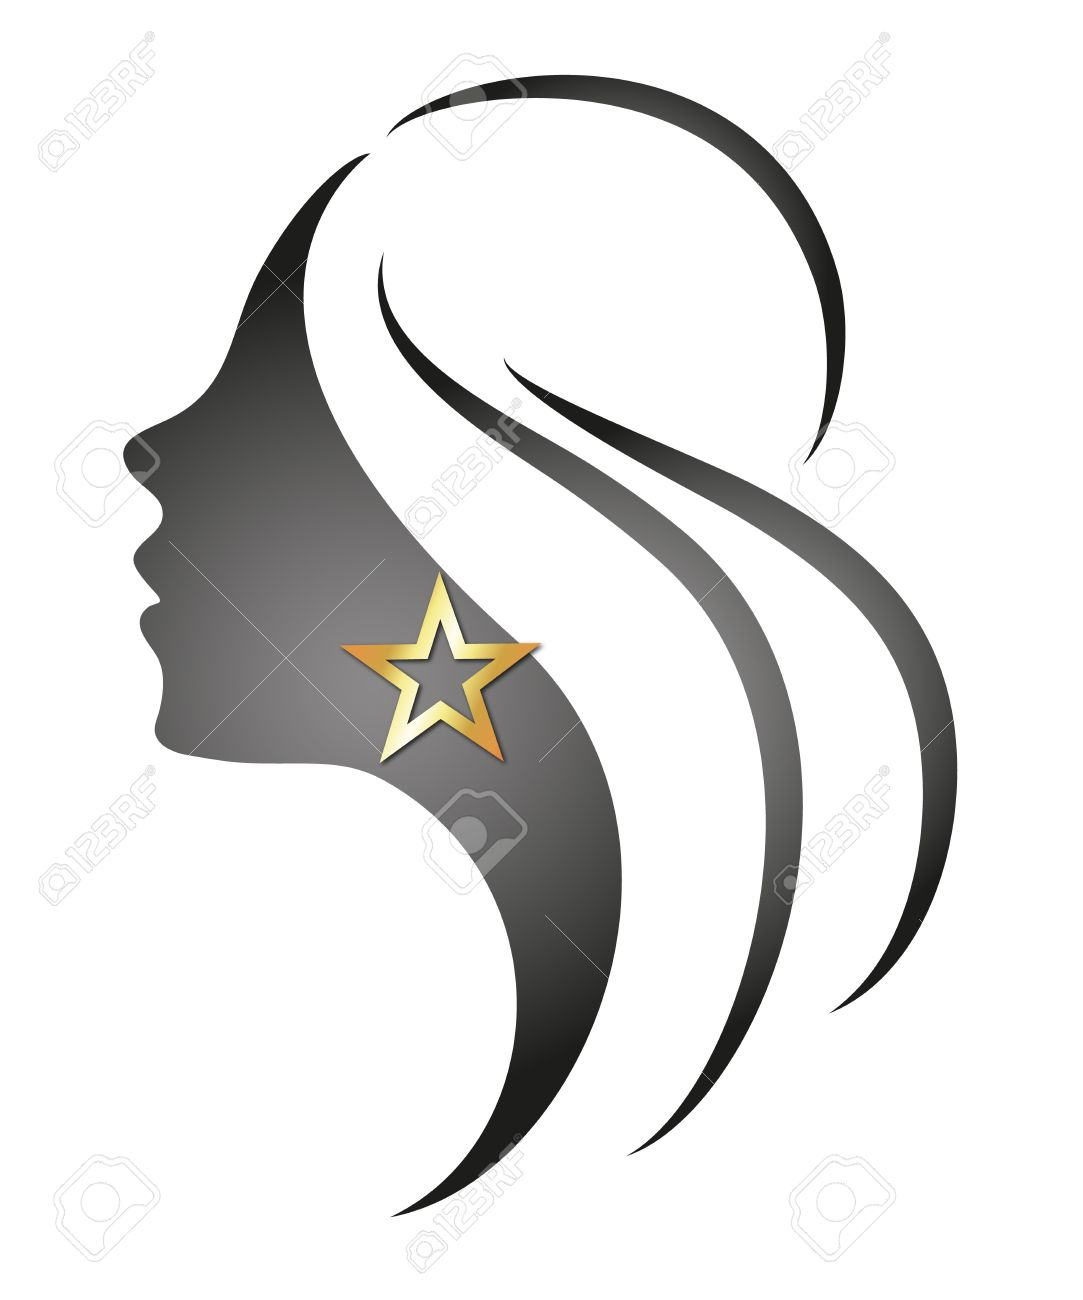 Beautiful Vector Girls And Logos From Stock Vector Beautiful Girl With a